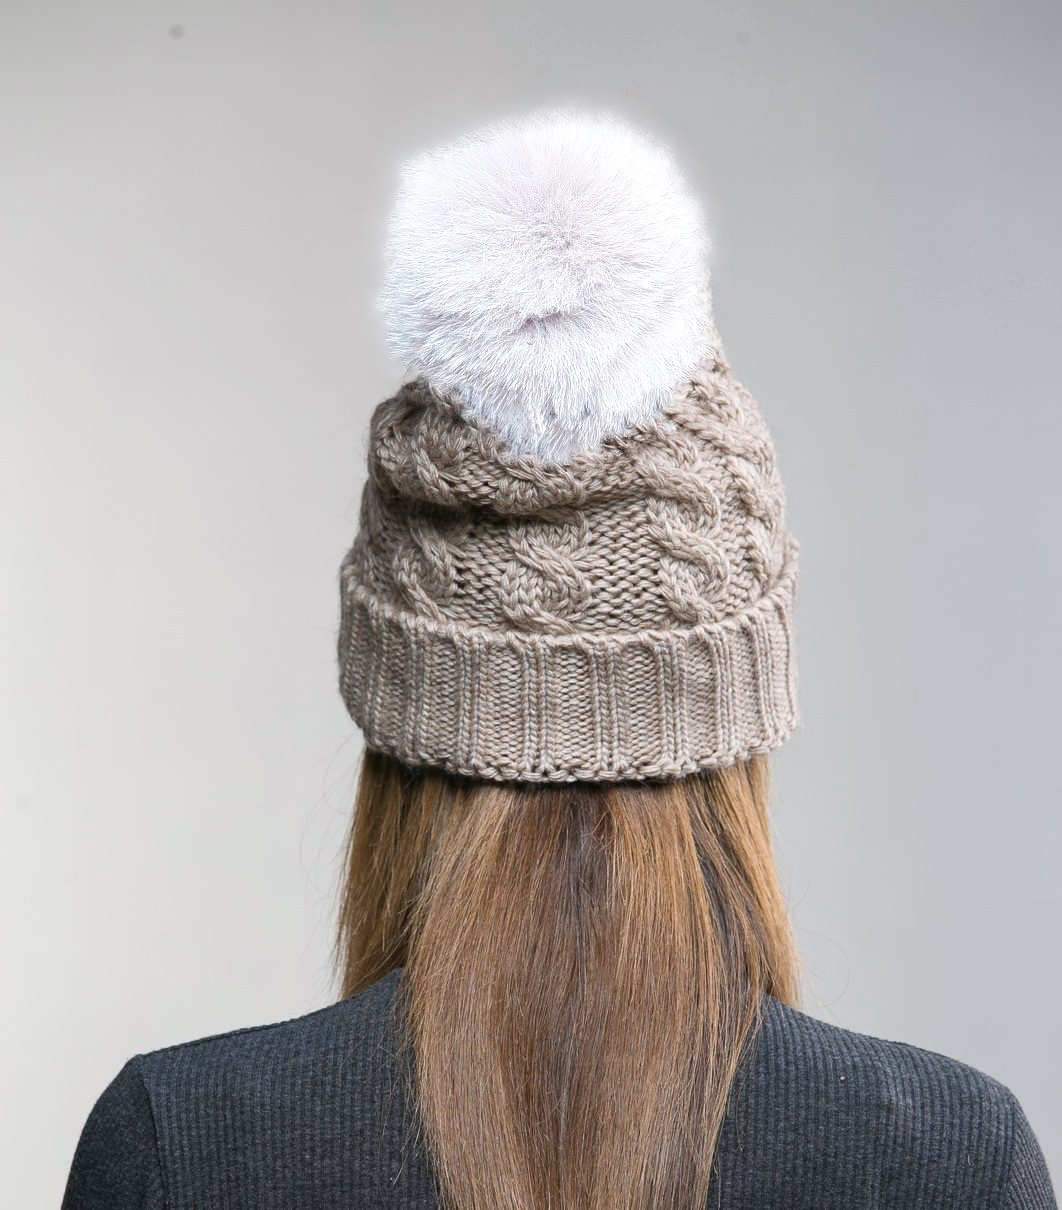 Warm knitted hat with fur pom pom BEIGE - GOODLOOK.shop 2bee00873c3